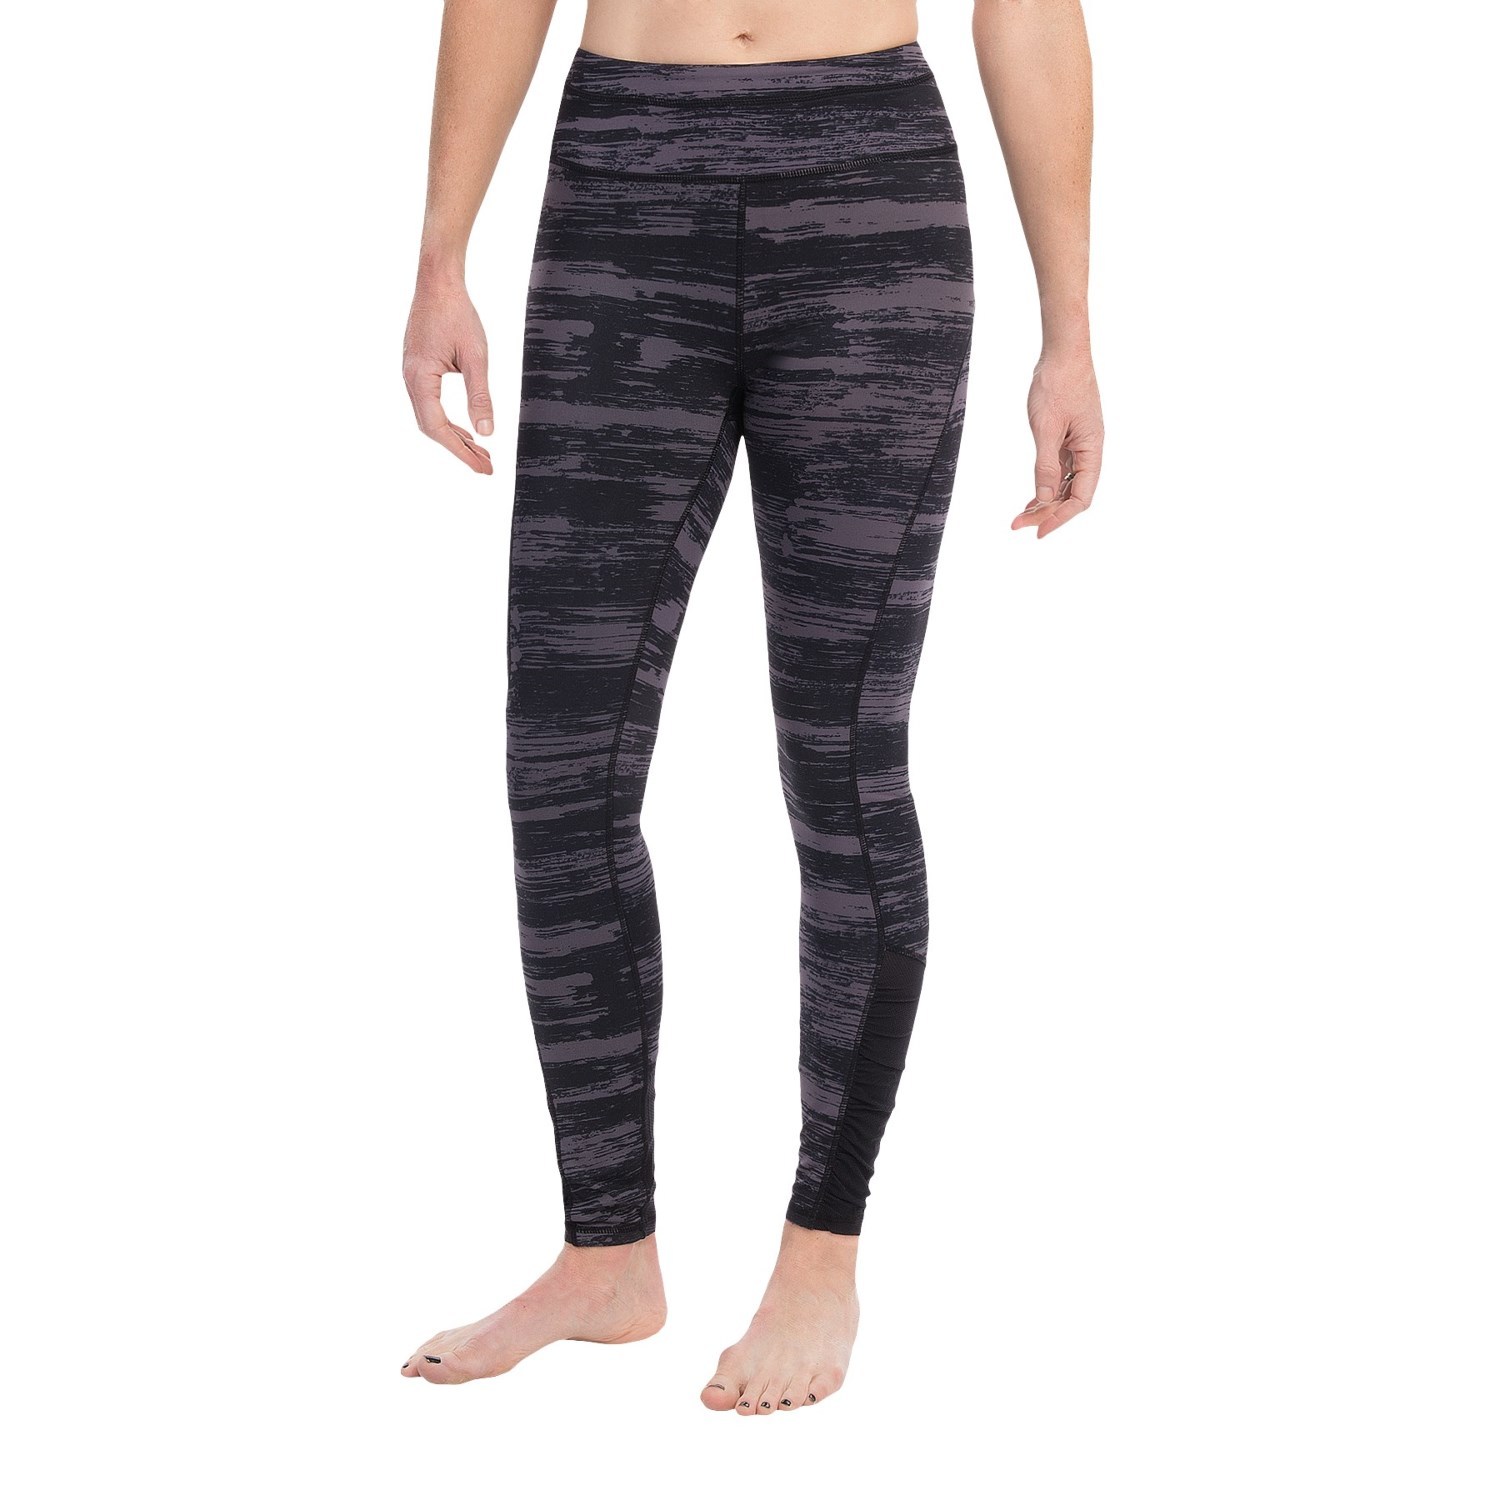 Kyodan Scratched Paint Leggings (For Women) 104AK